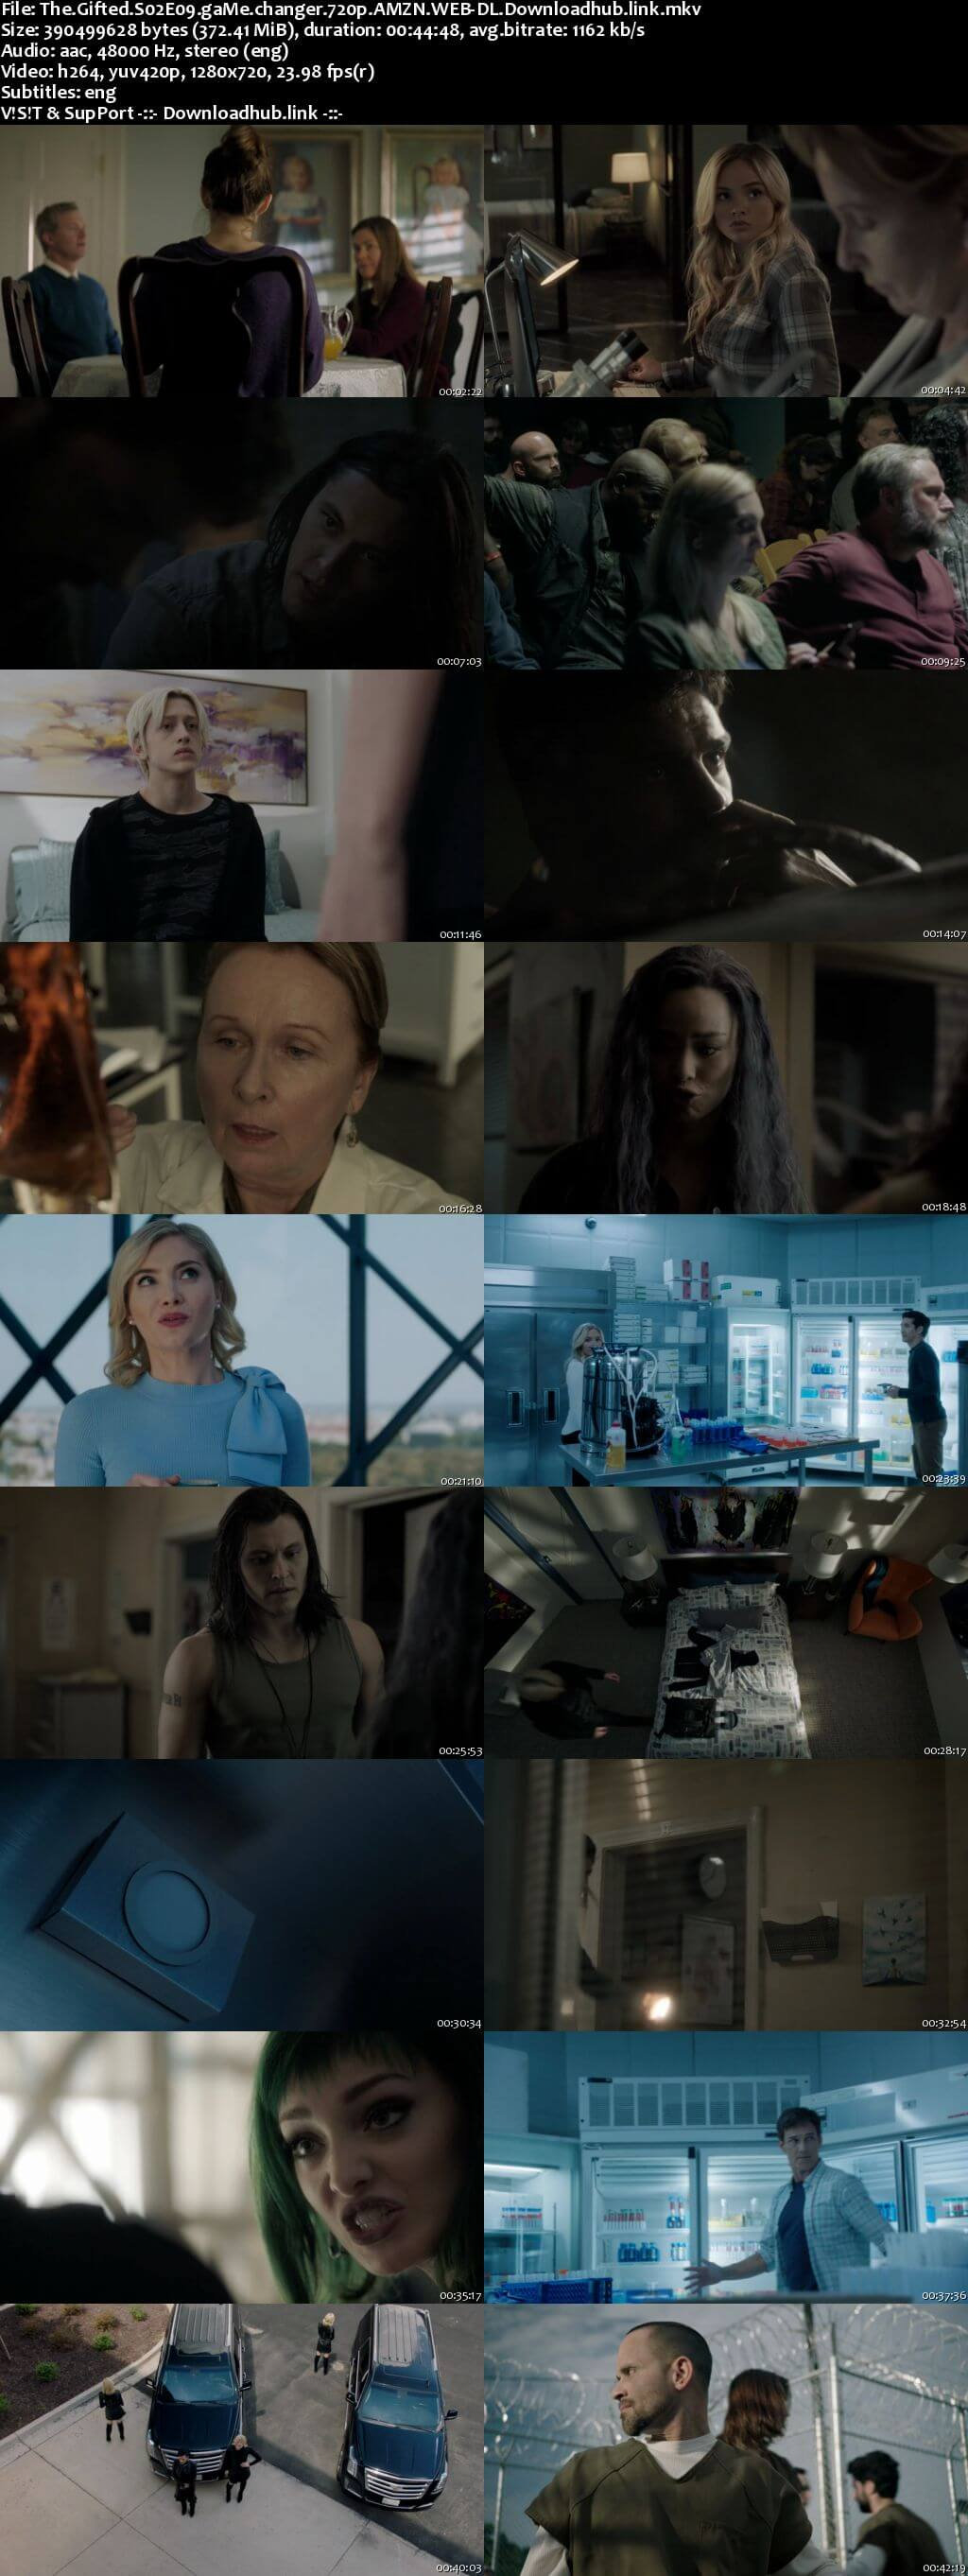 The Gifted S02E09 350MB AMZN WEB-DL 720p ESubs